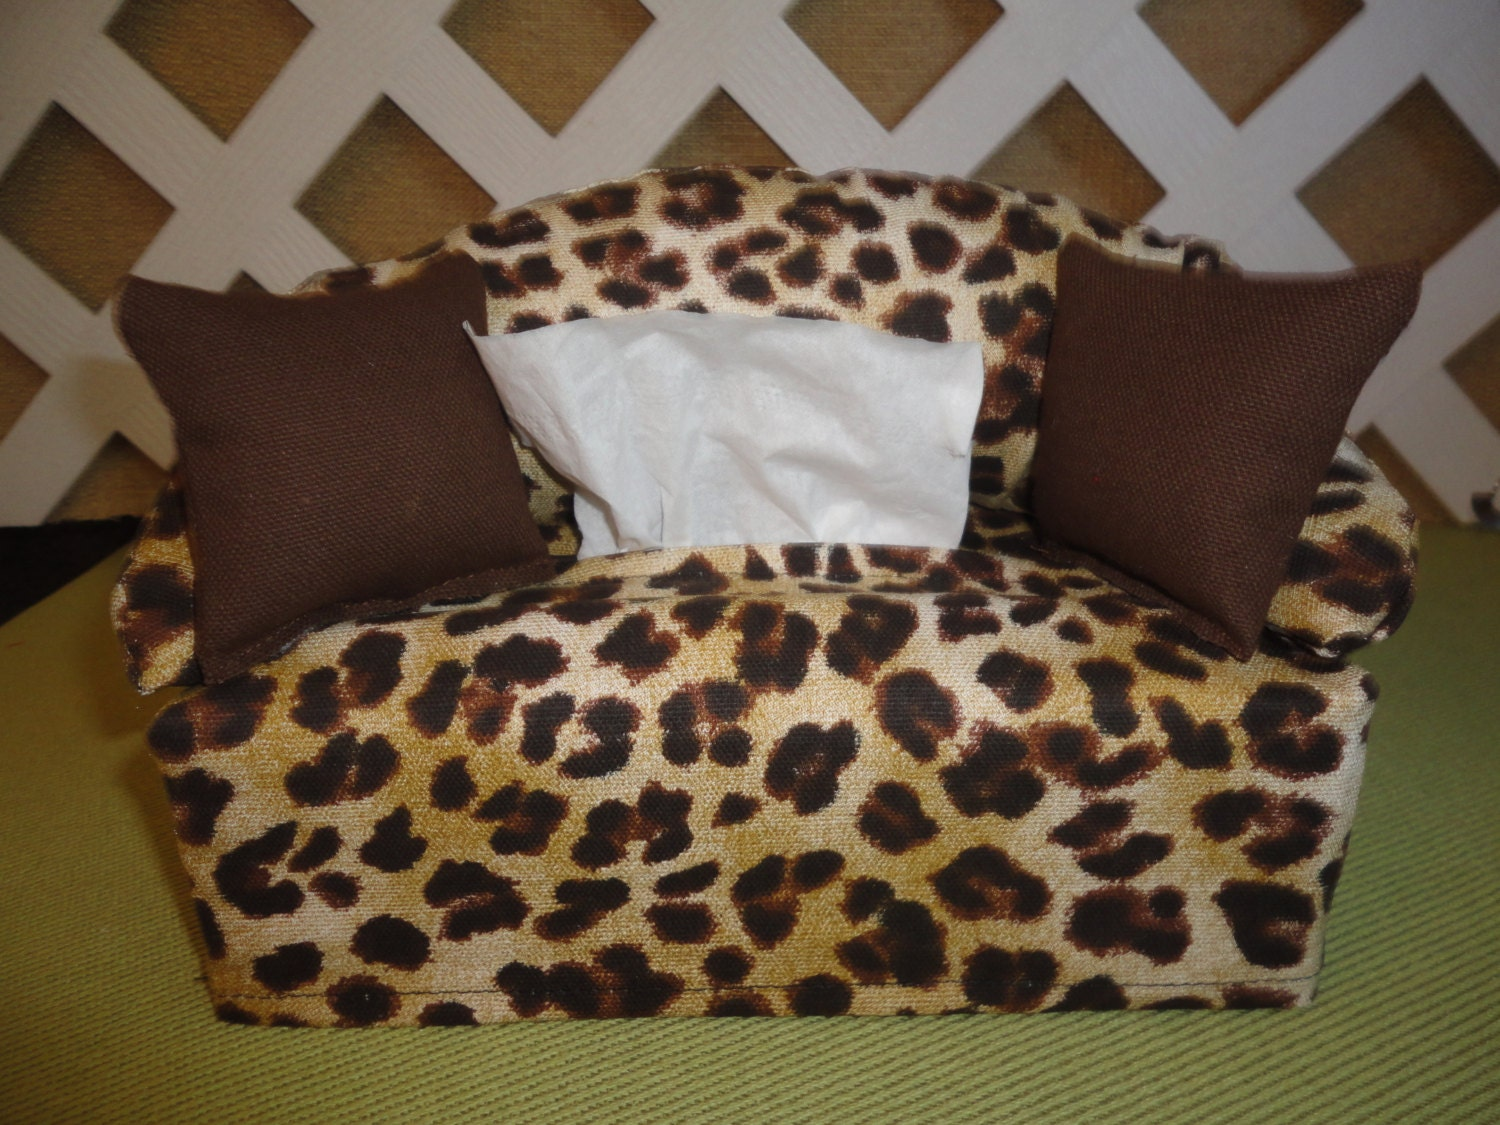 leopard print tissue box cover in sofa shape tan and brown